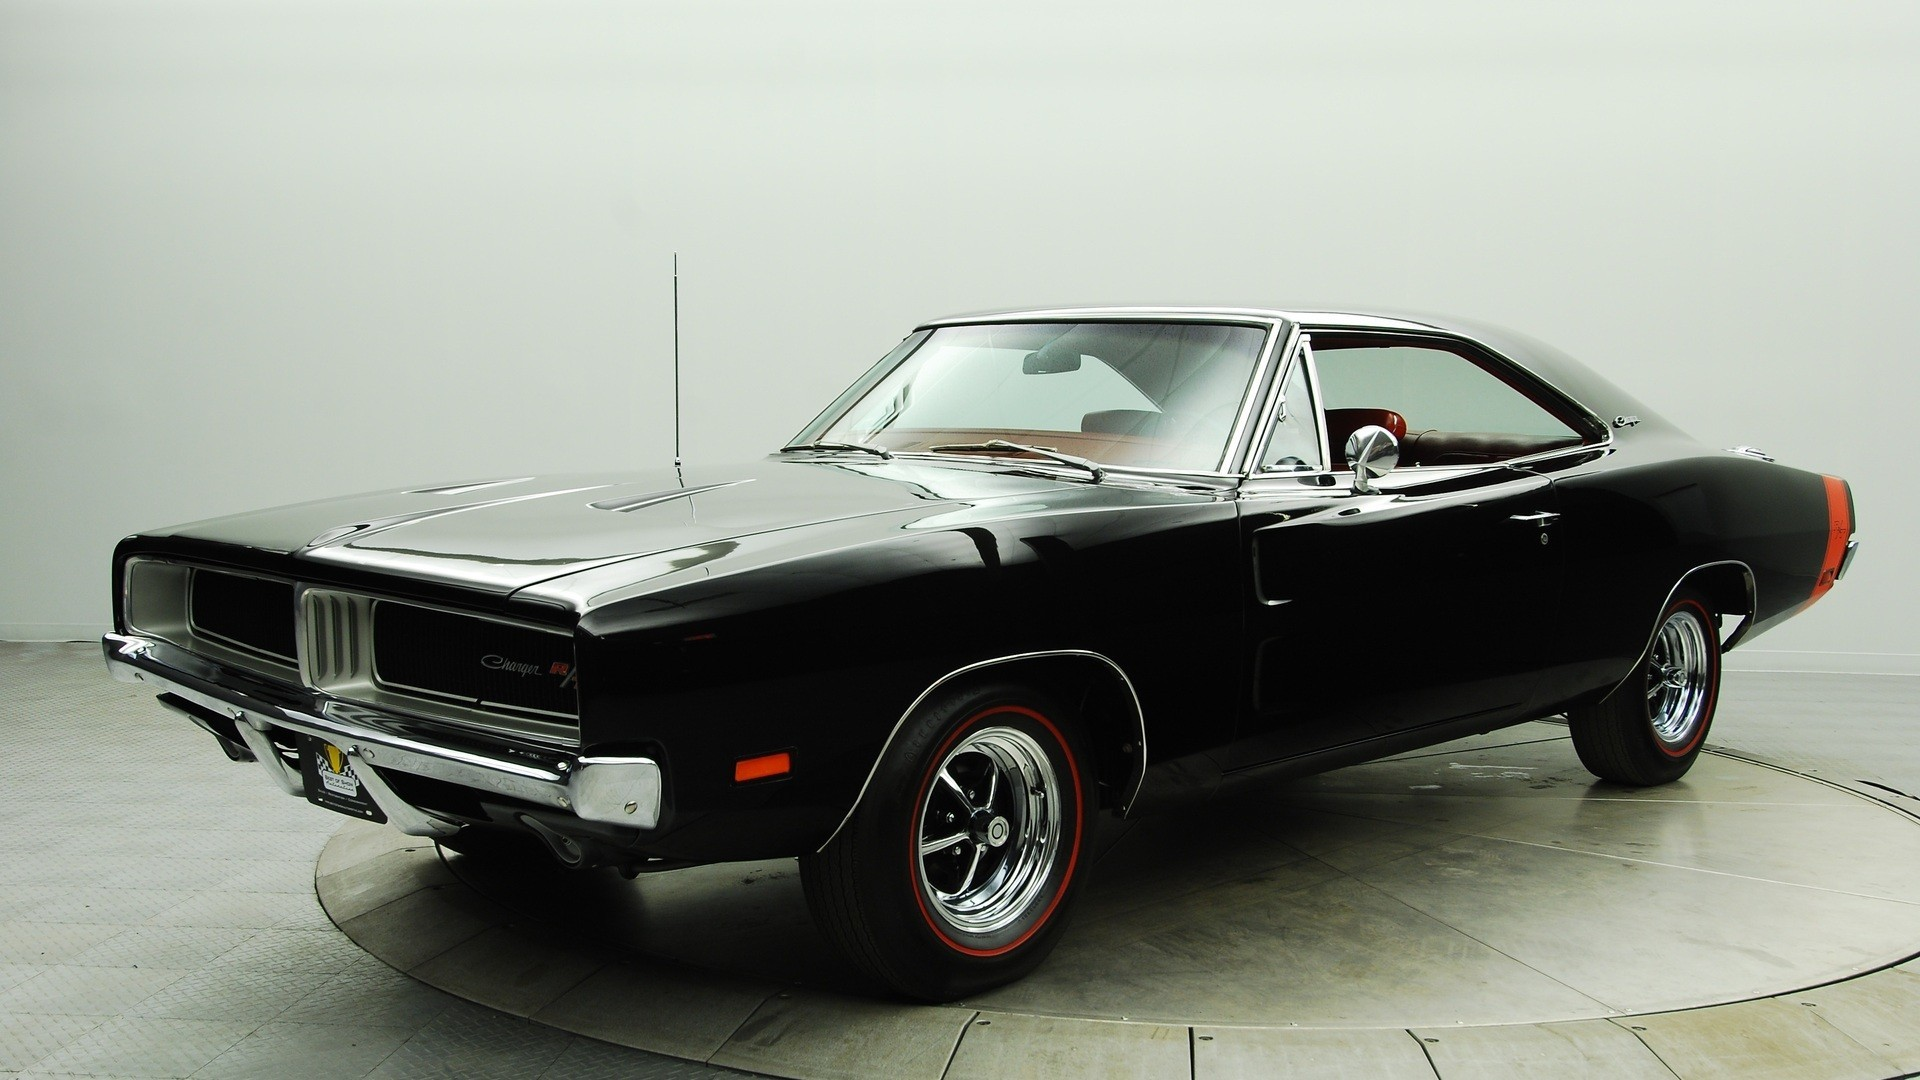 Black Cars Classic Dodge Charger RT Muscle Car